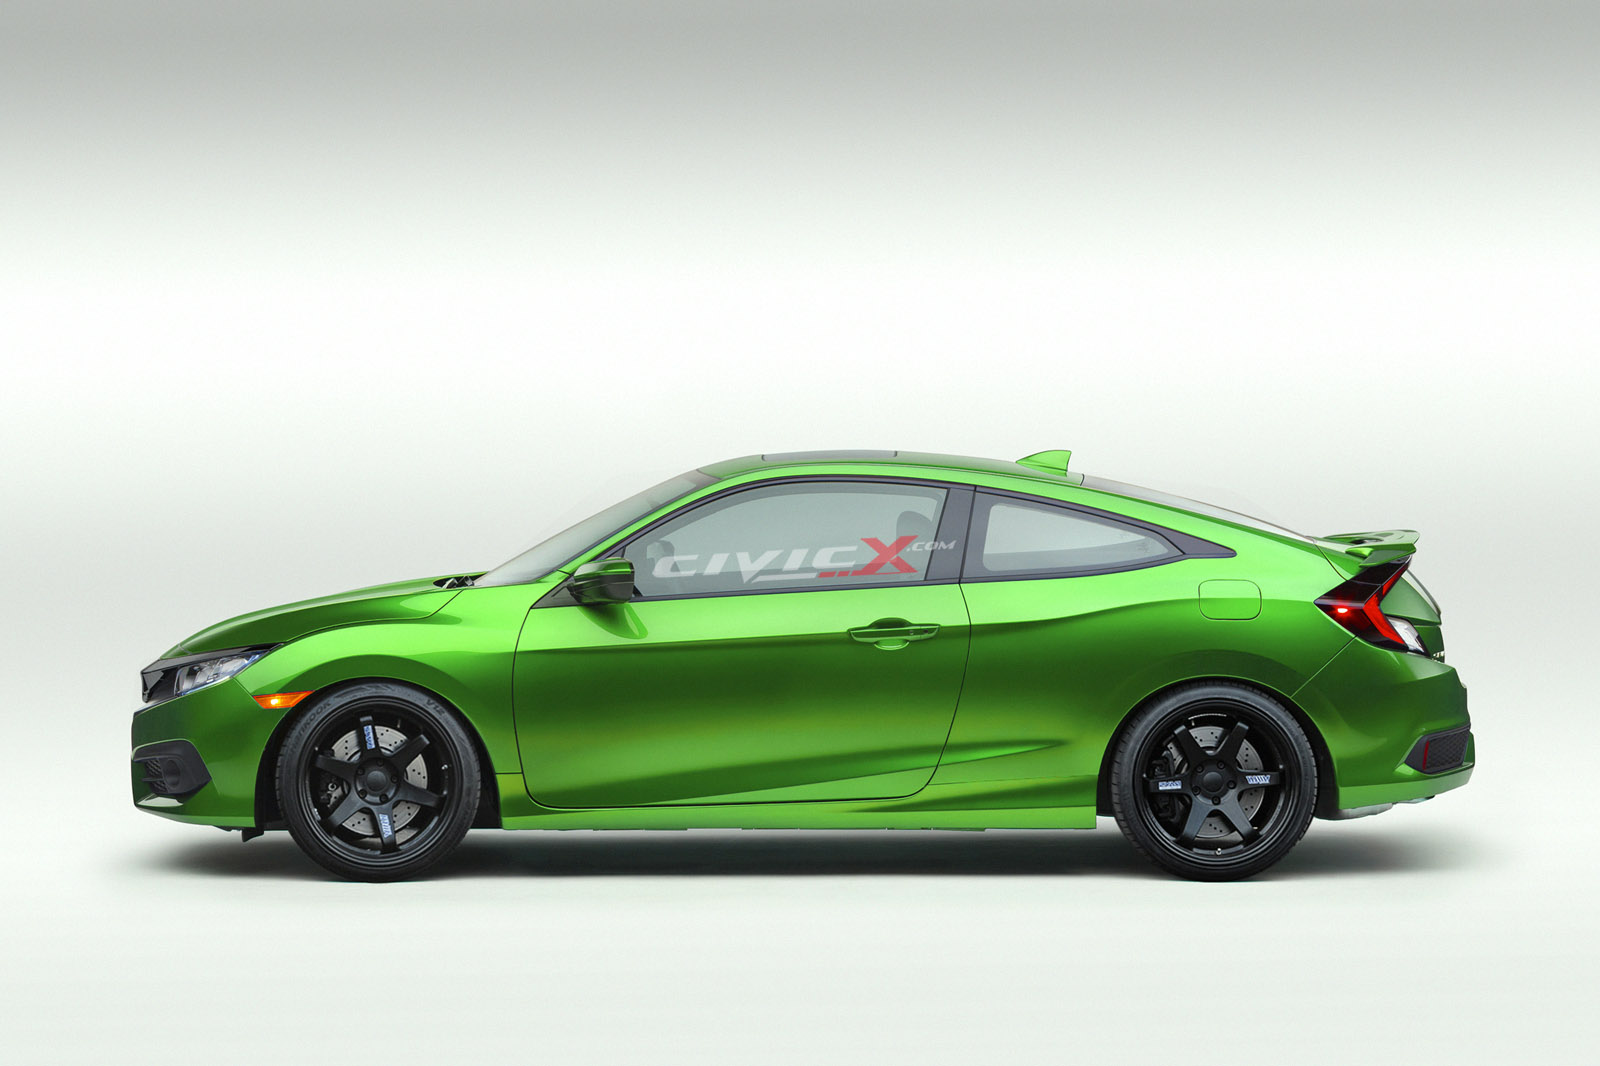 modified-2016-civic-coupe-aftermarketwheels-9.jpg